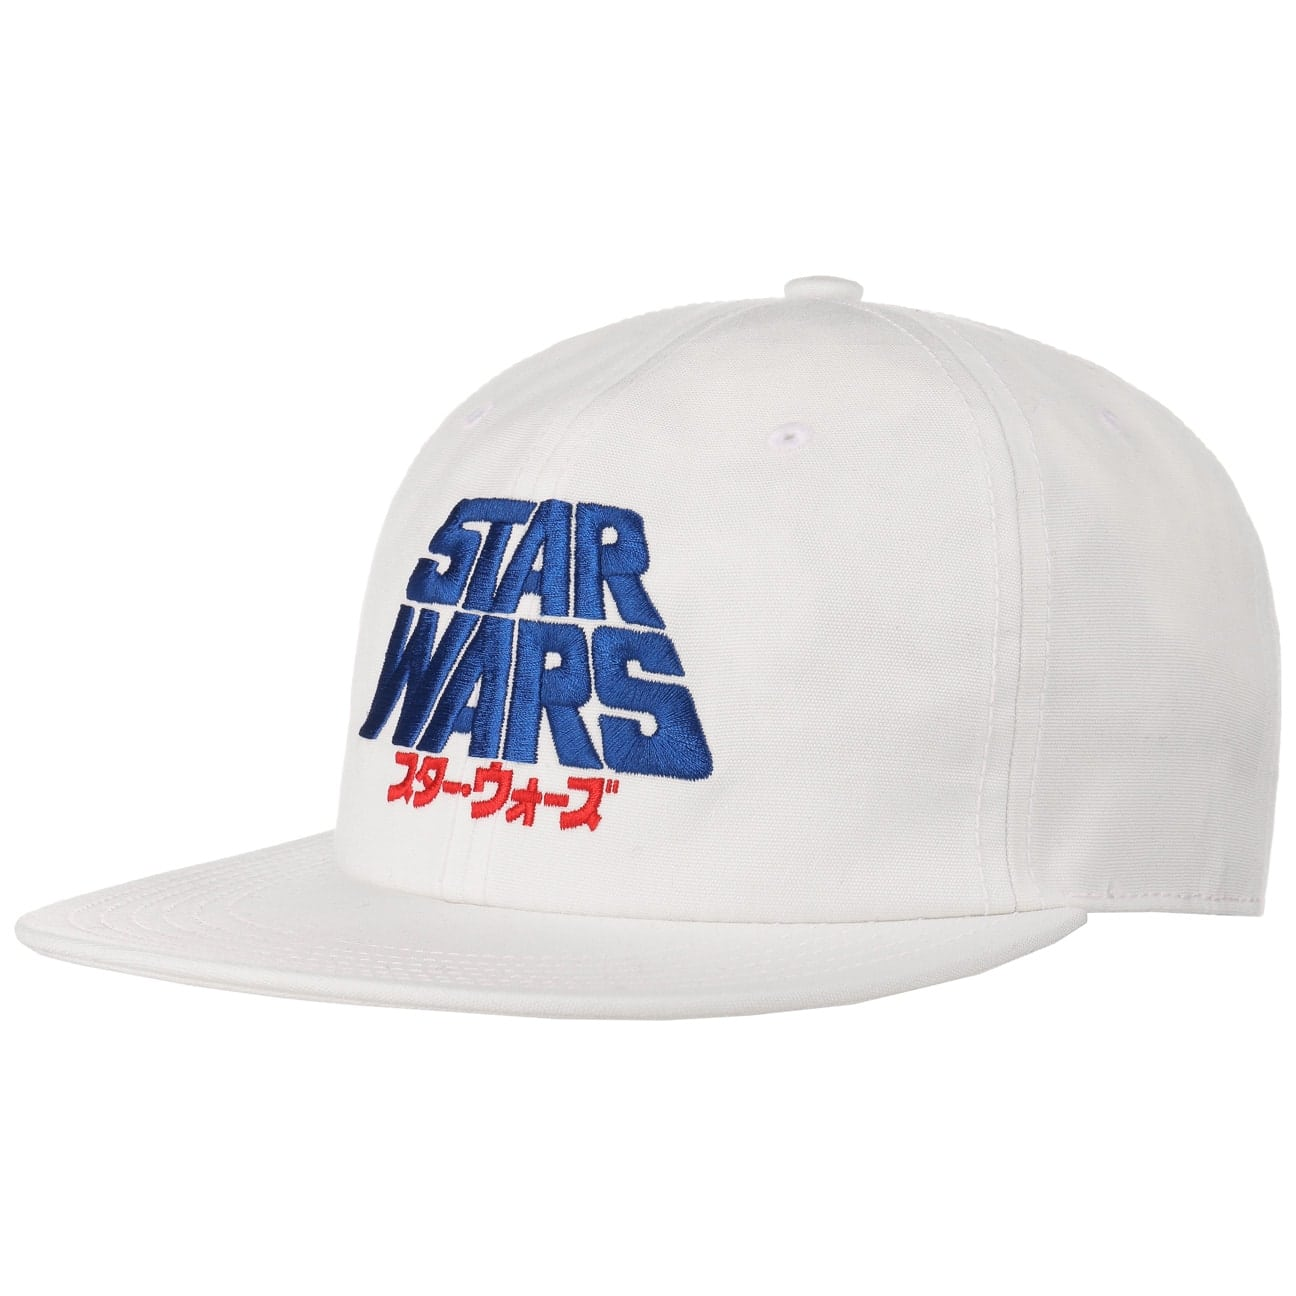 Casquette Star Wars Unstruct by dedicated  baseball cap